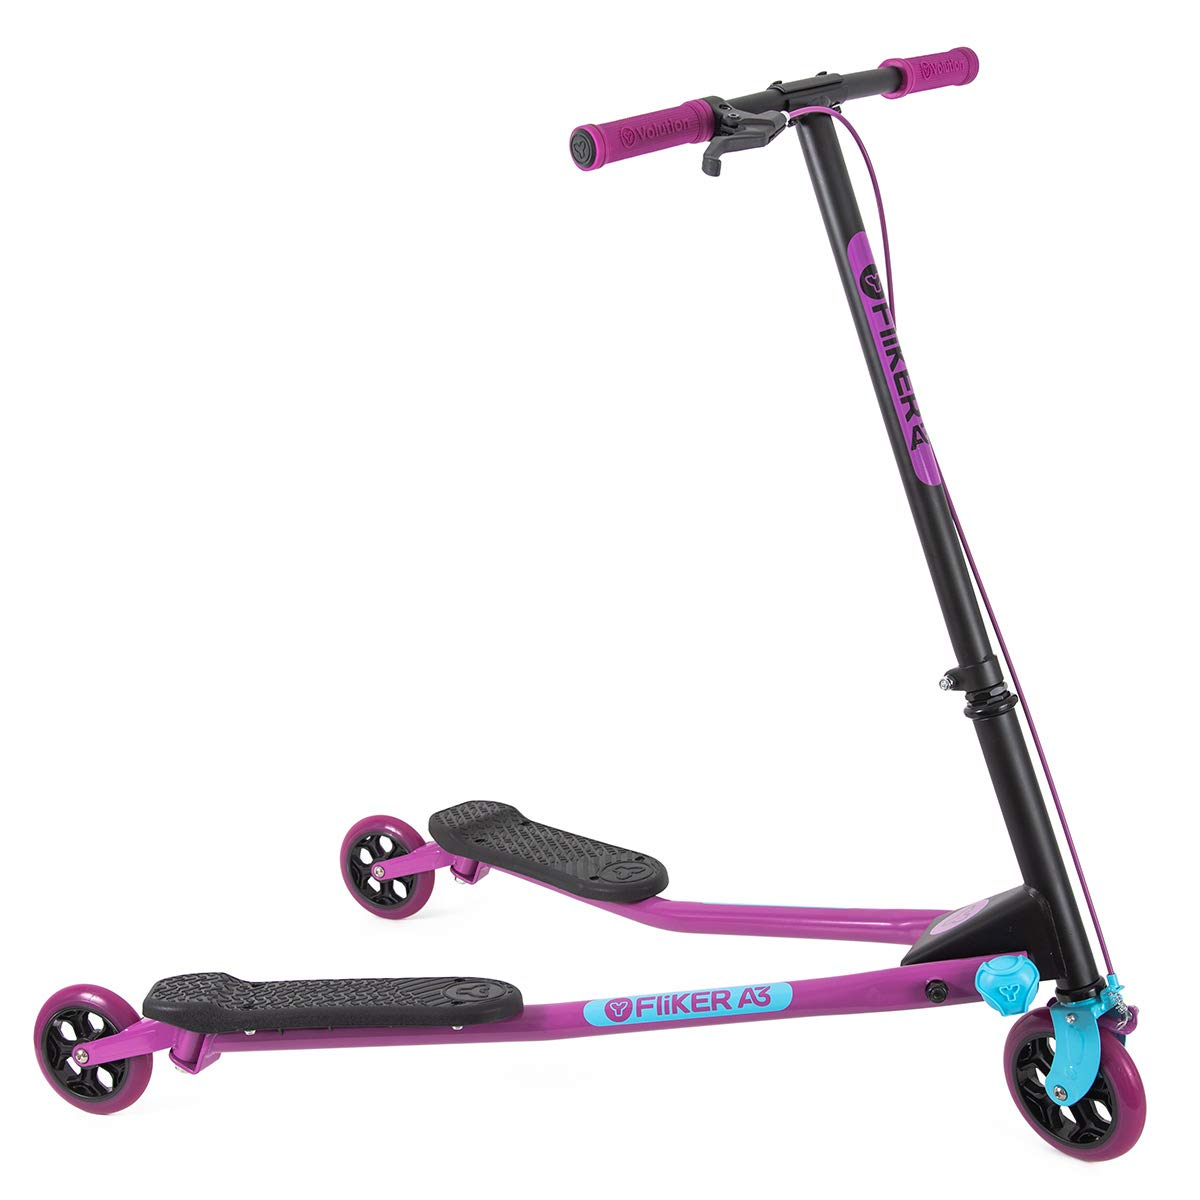 Yvolution Fliker Drifting Scooter Purple